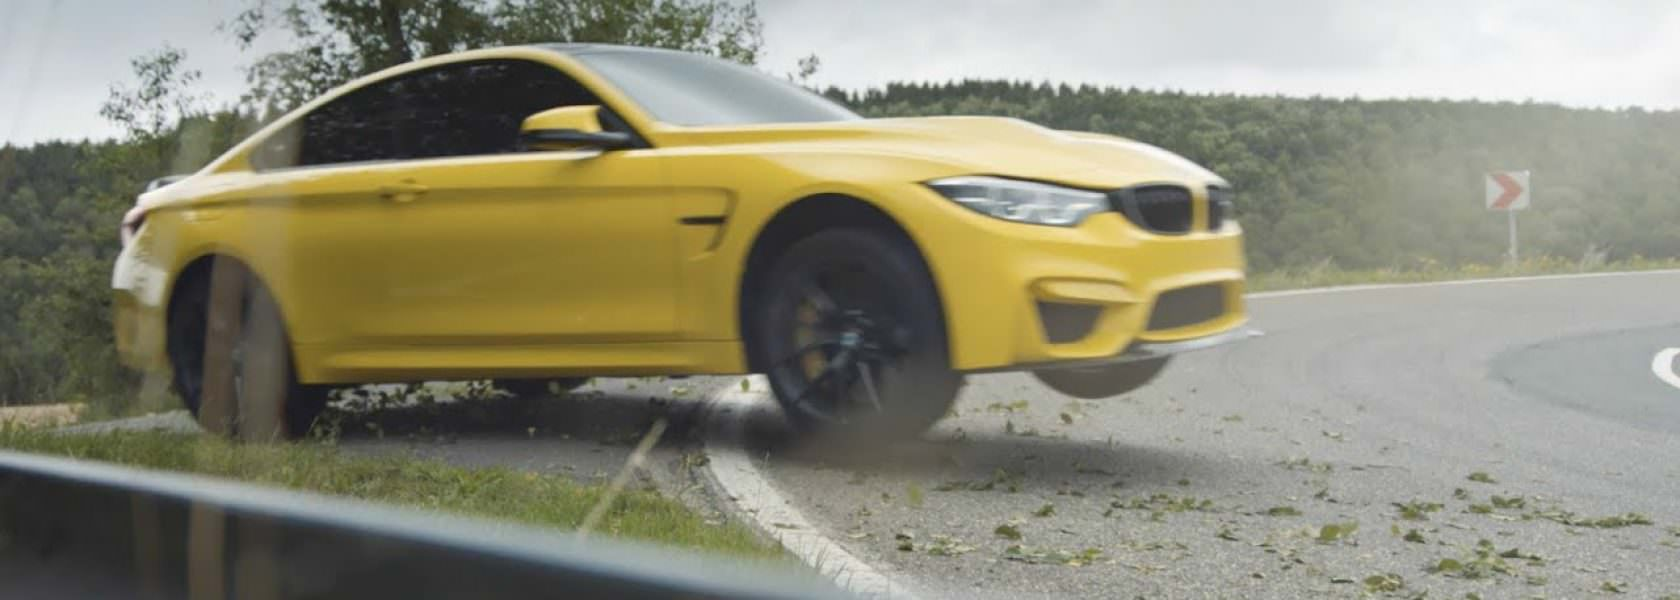 Drift BMW M4 CS Pennzoil